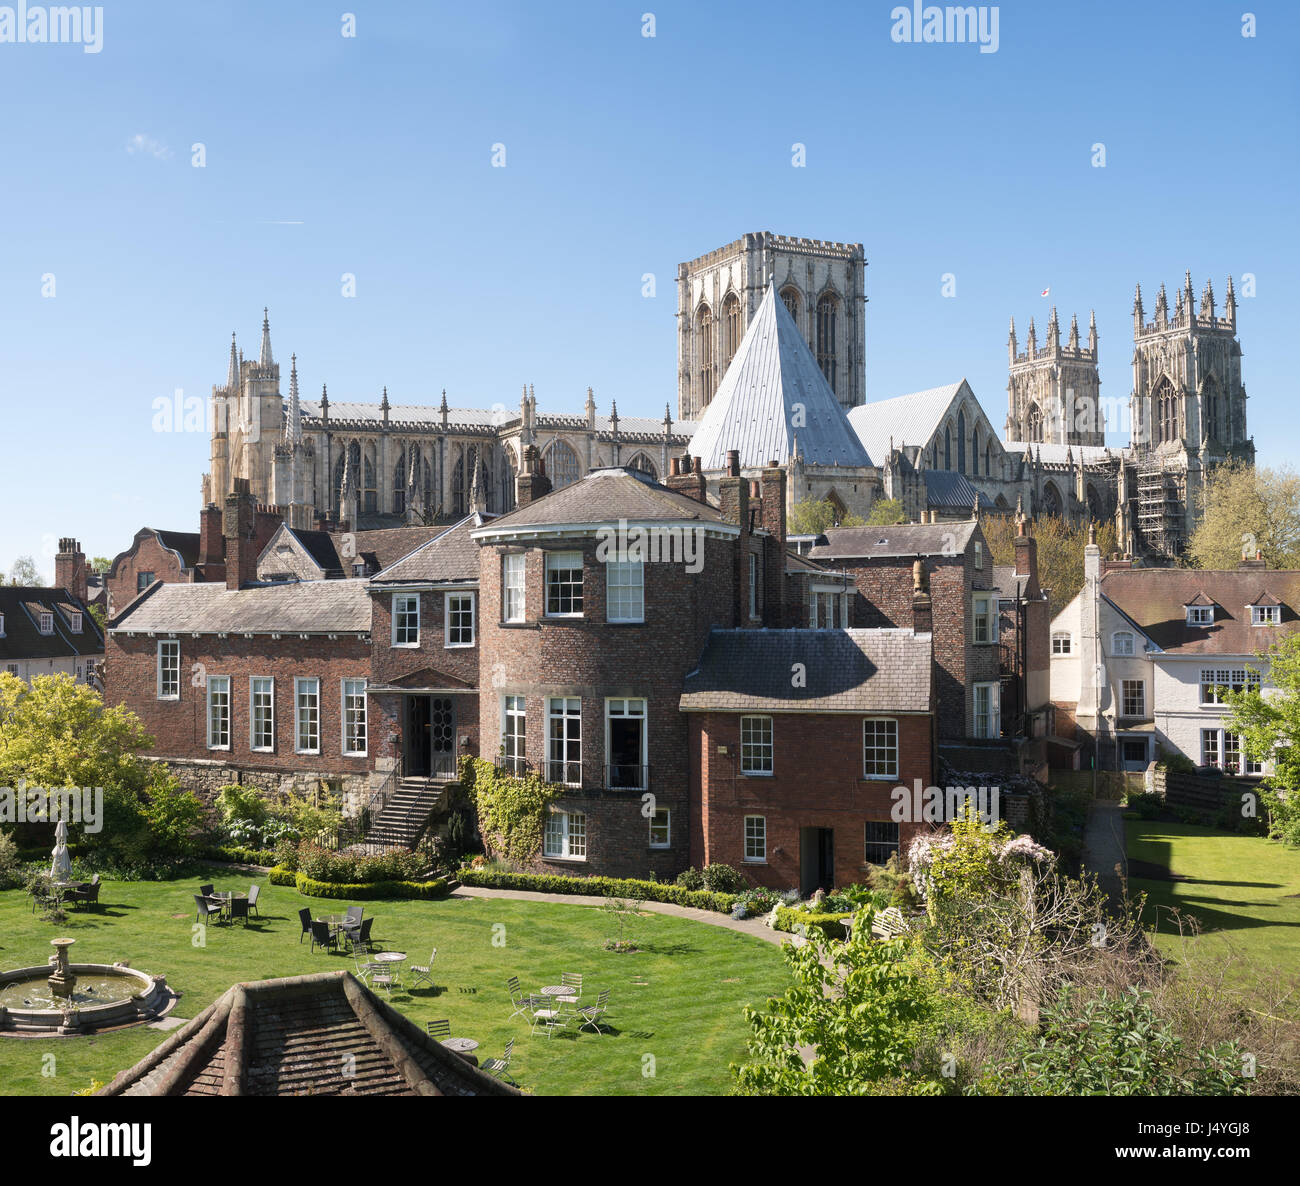 Grays Court Hotel and York MInster seen from the city walls, York, England, UK - Stock Image